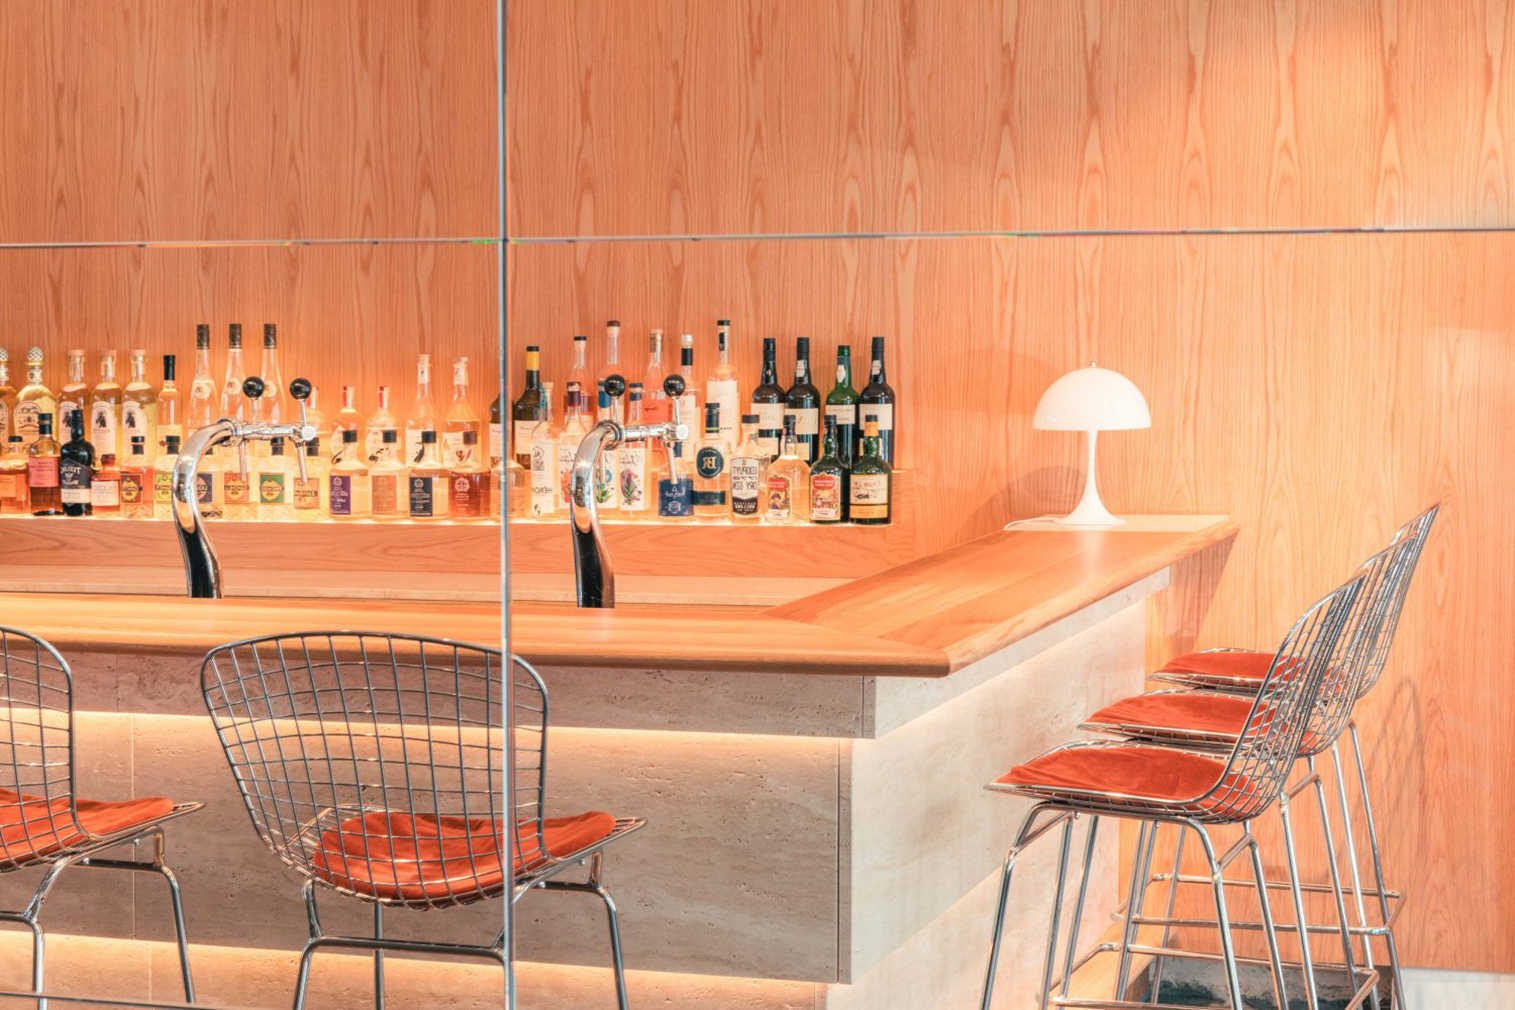 New Rotterdam culinary haunt Héroine channels the 1970s